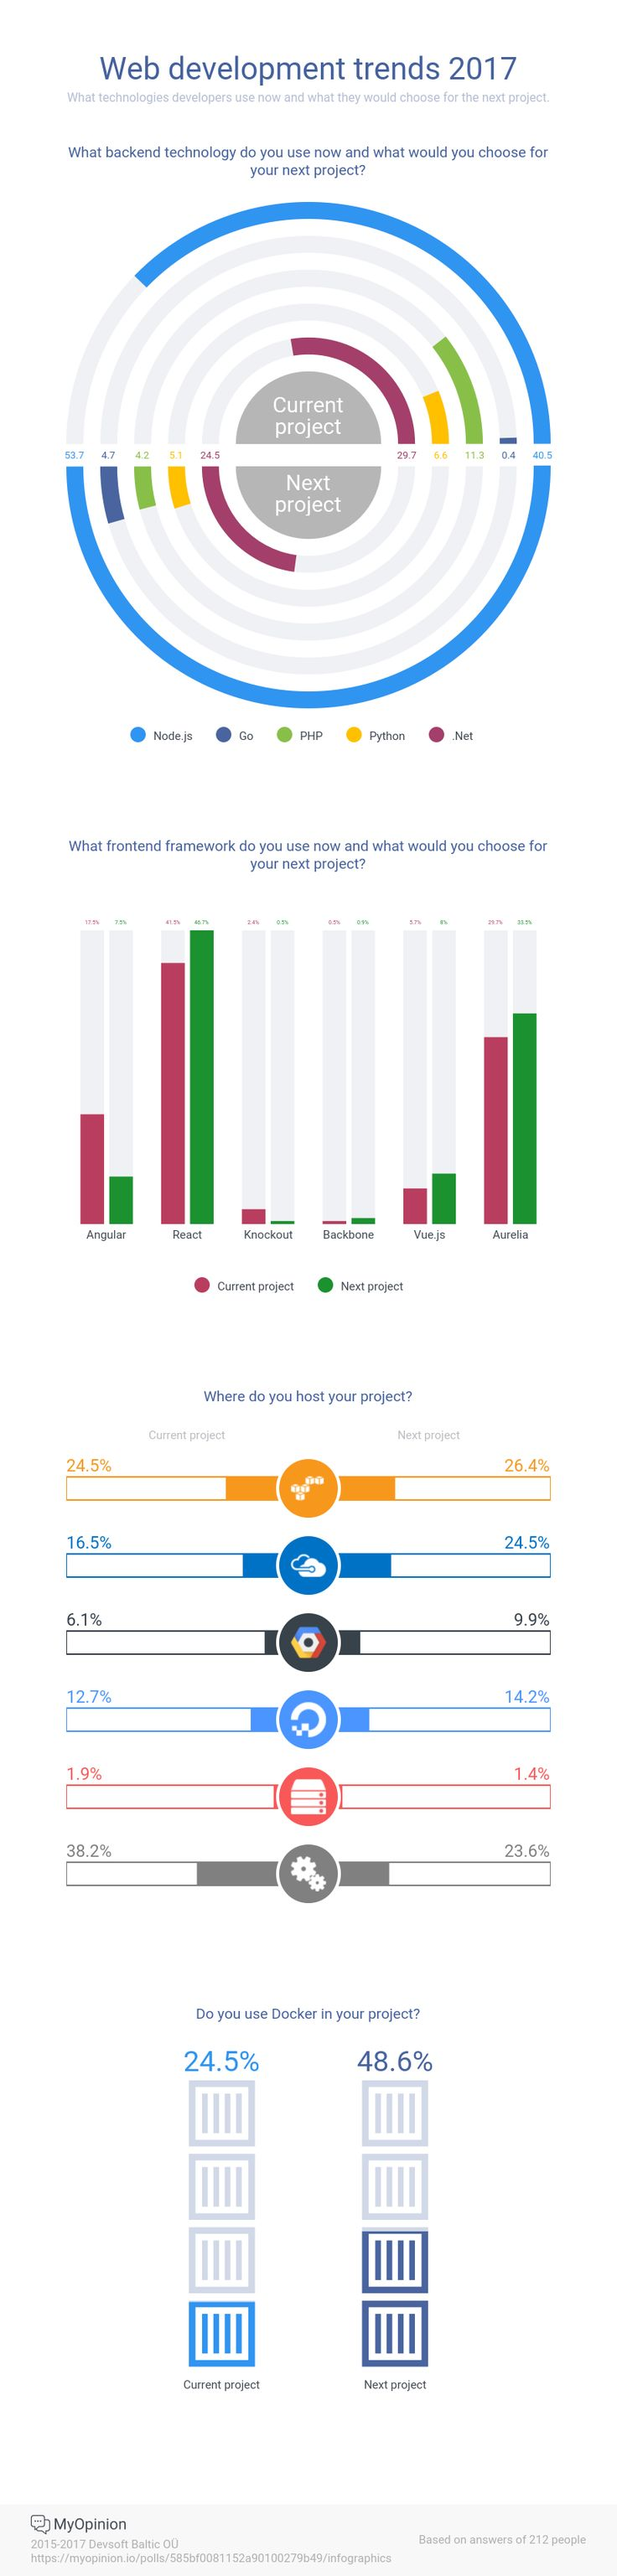 Web development trends 2017 What technologies developers use now and what they would choose for the next project. https://myopinion.io/polls/585bf0081152a90100279b49/infographics #infographics #web #programming #javascript